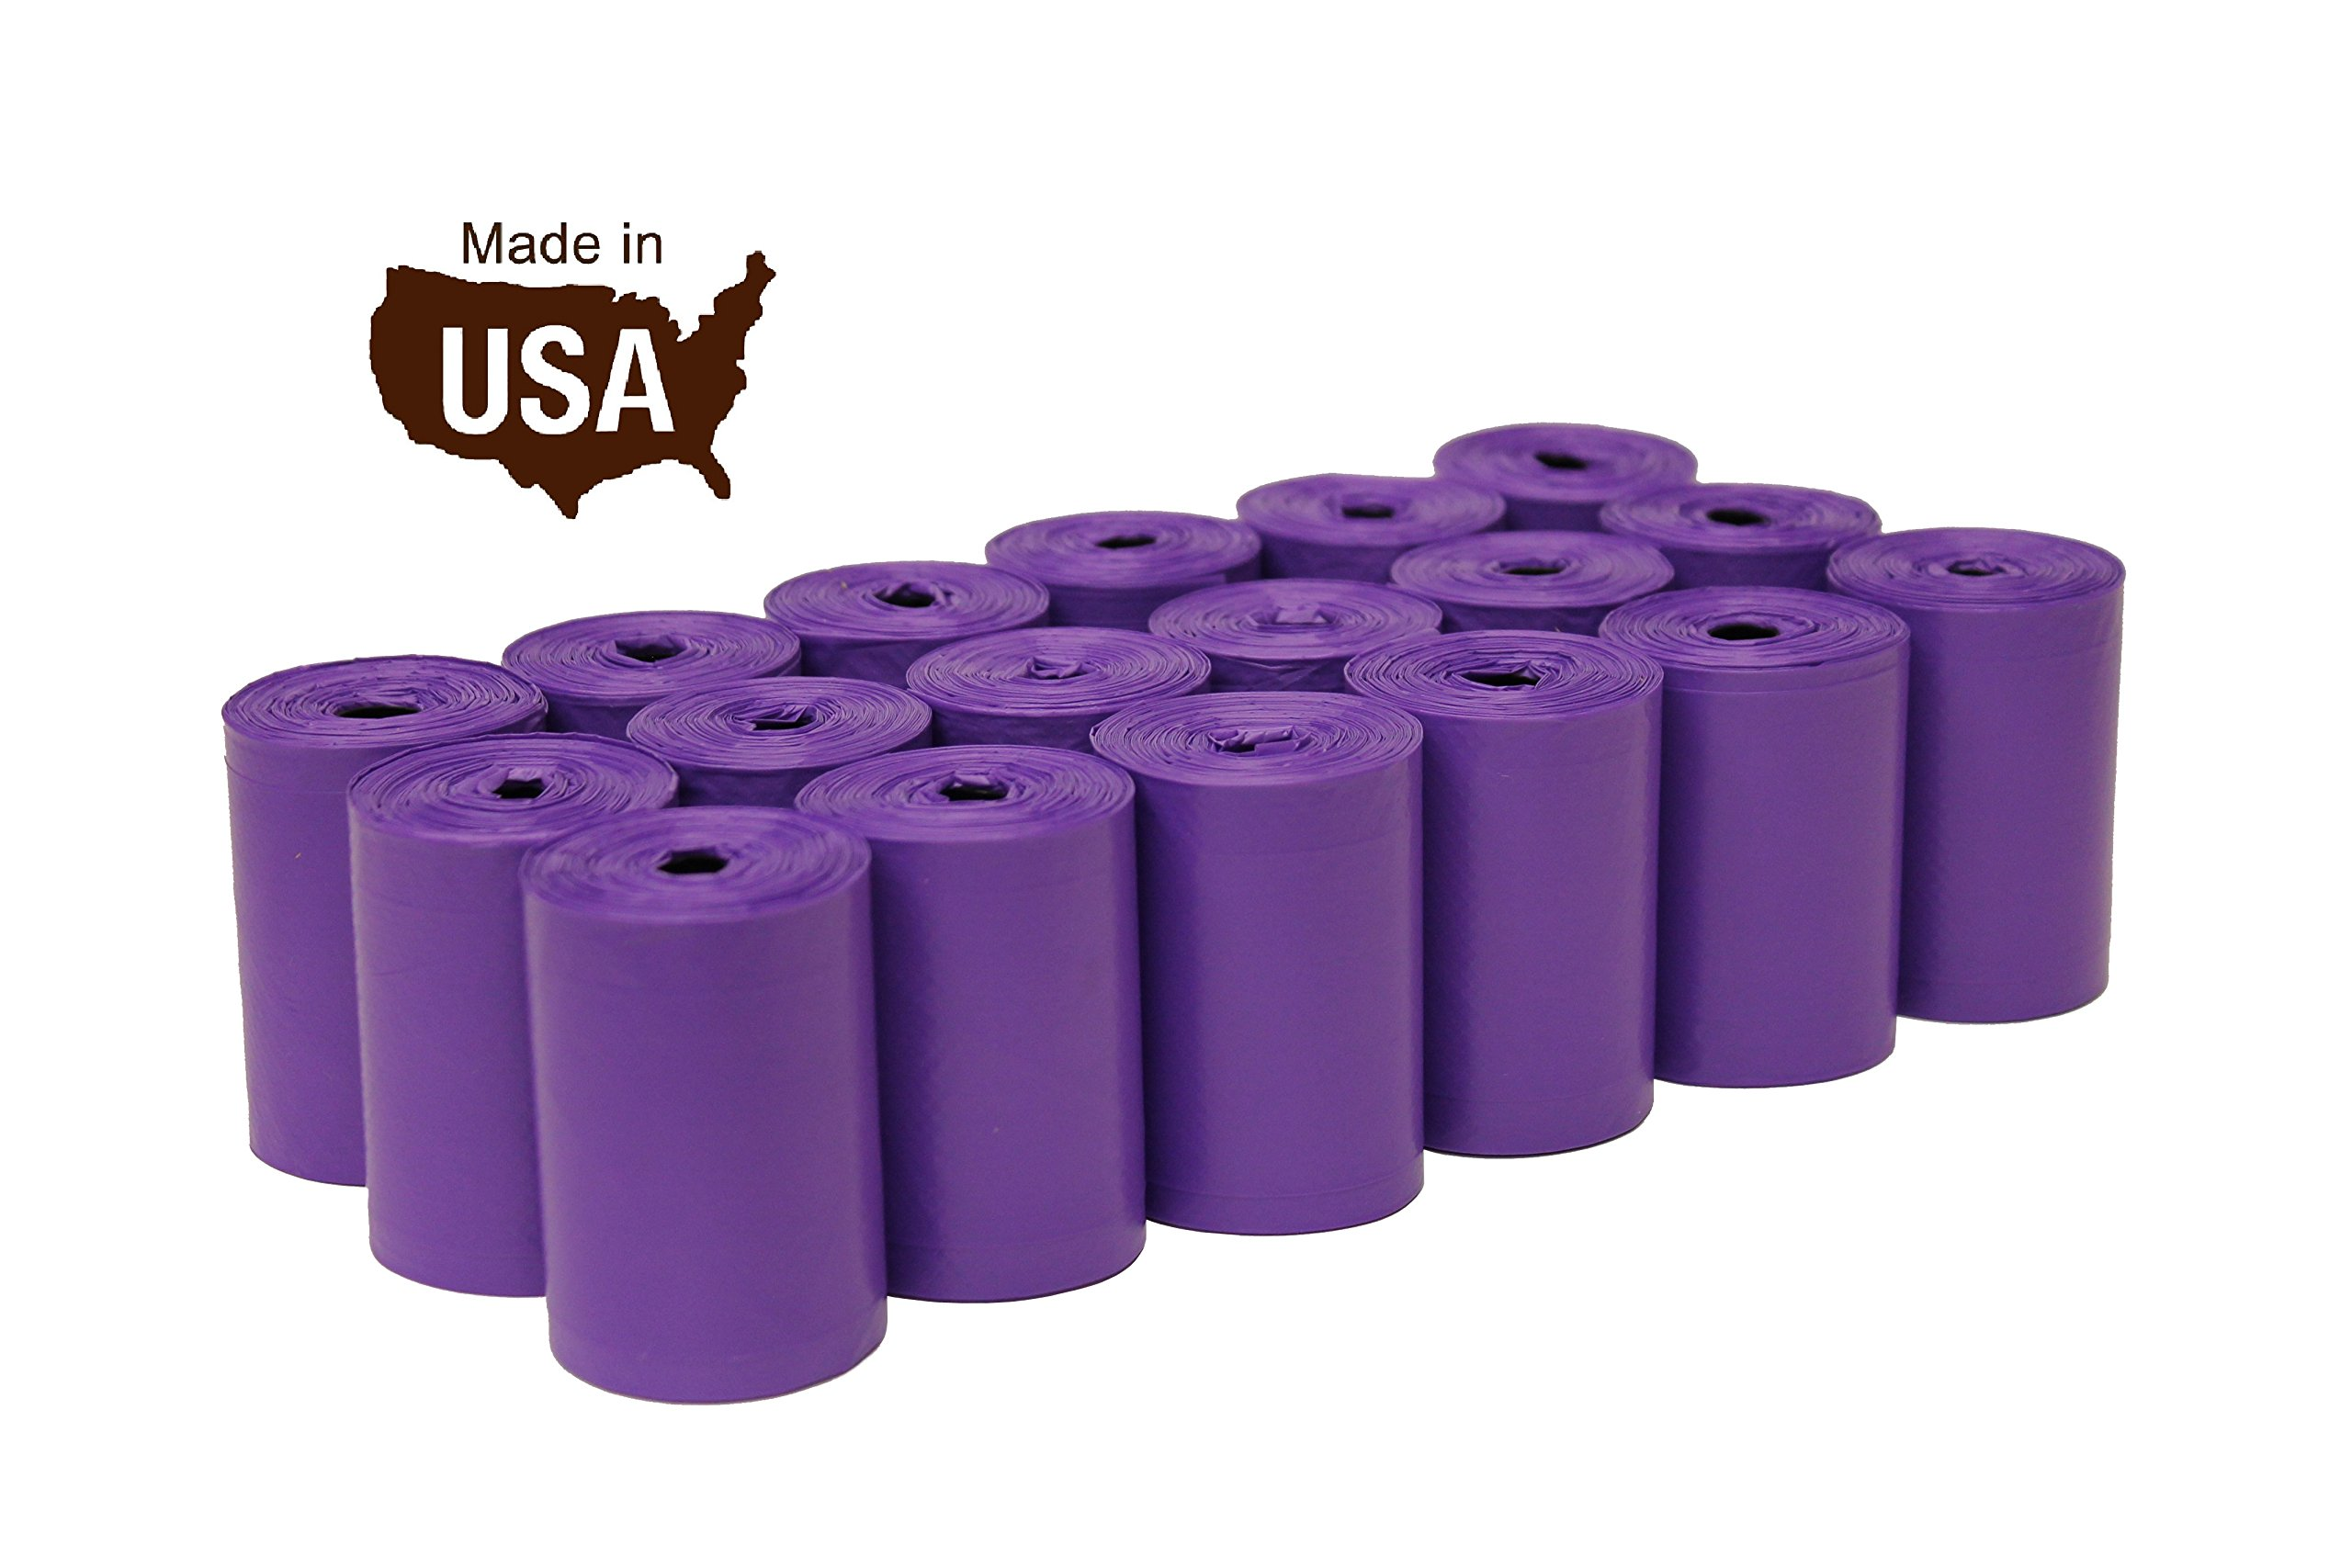 FiveStarPet 9'' x 14.25'' Dog Waste Bags with Dispenser, 18 Refill Rolls, 270 Count, Purple